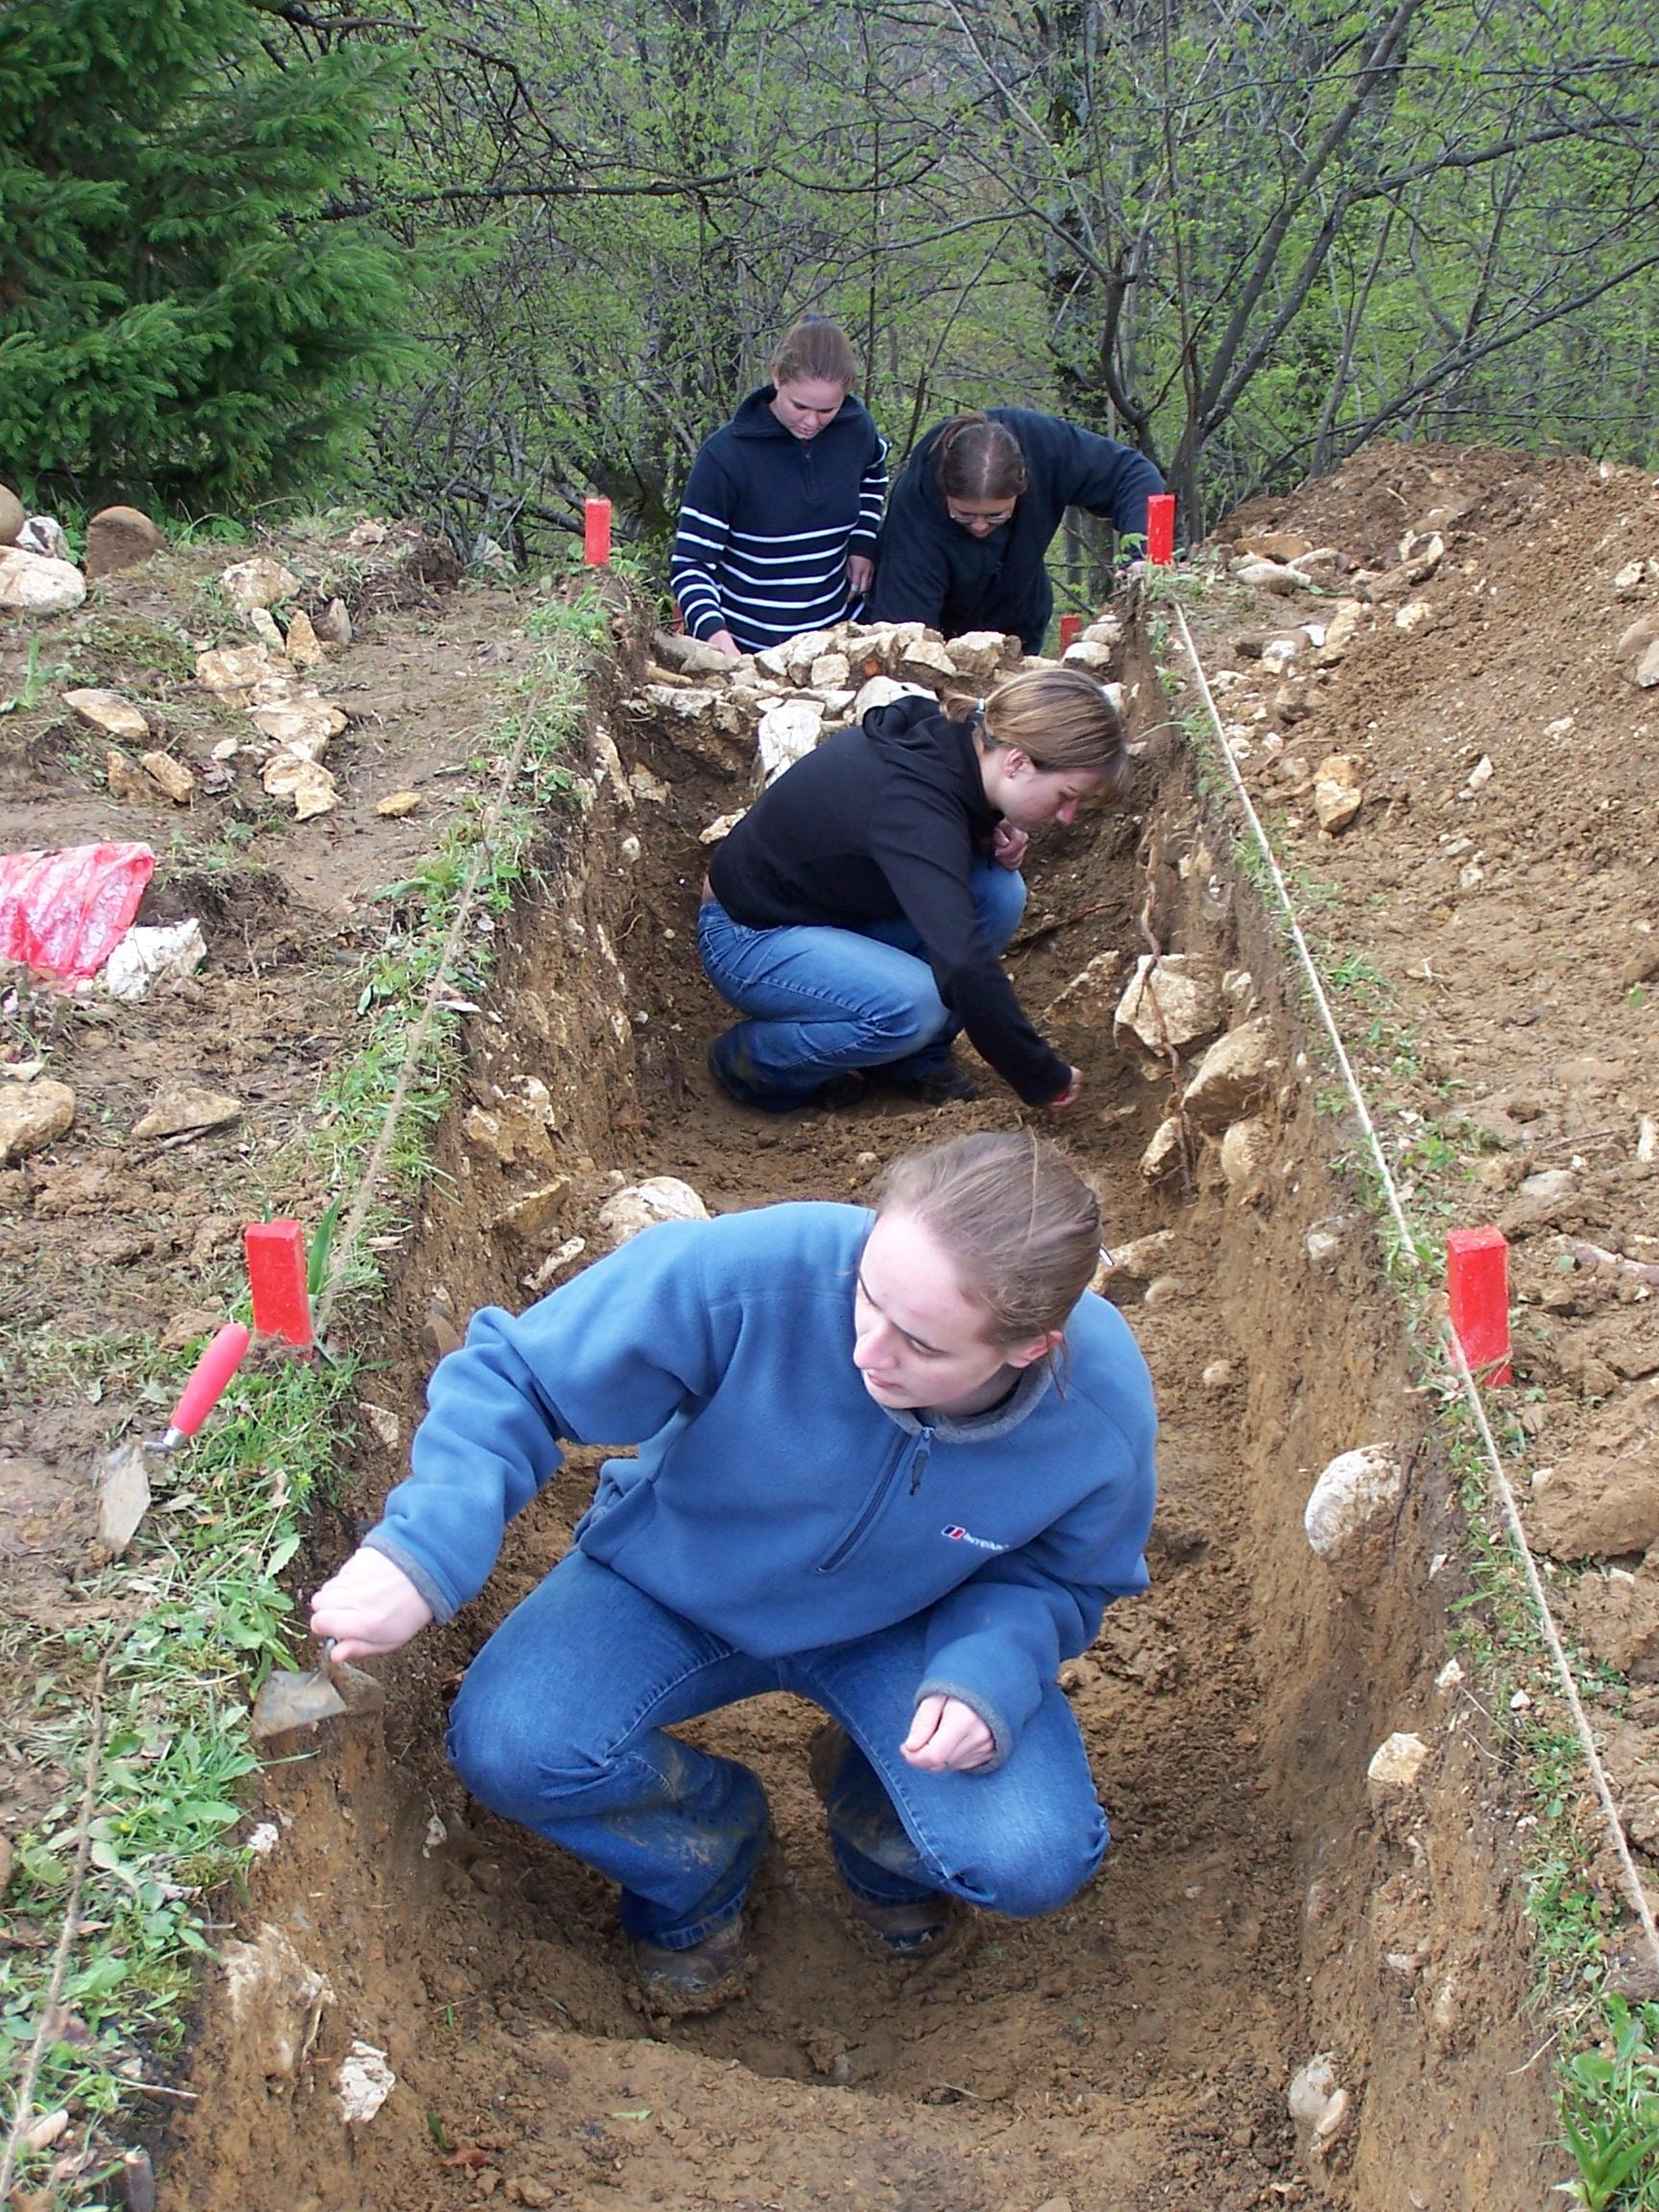 Volunteers in a trench performing studies on the Archaeology project in Romania